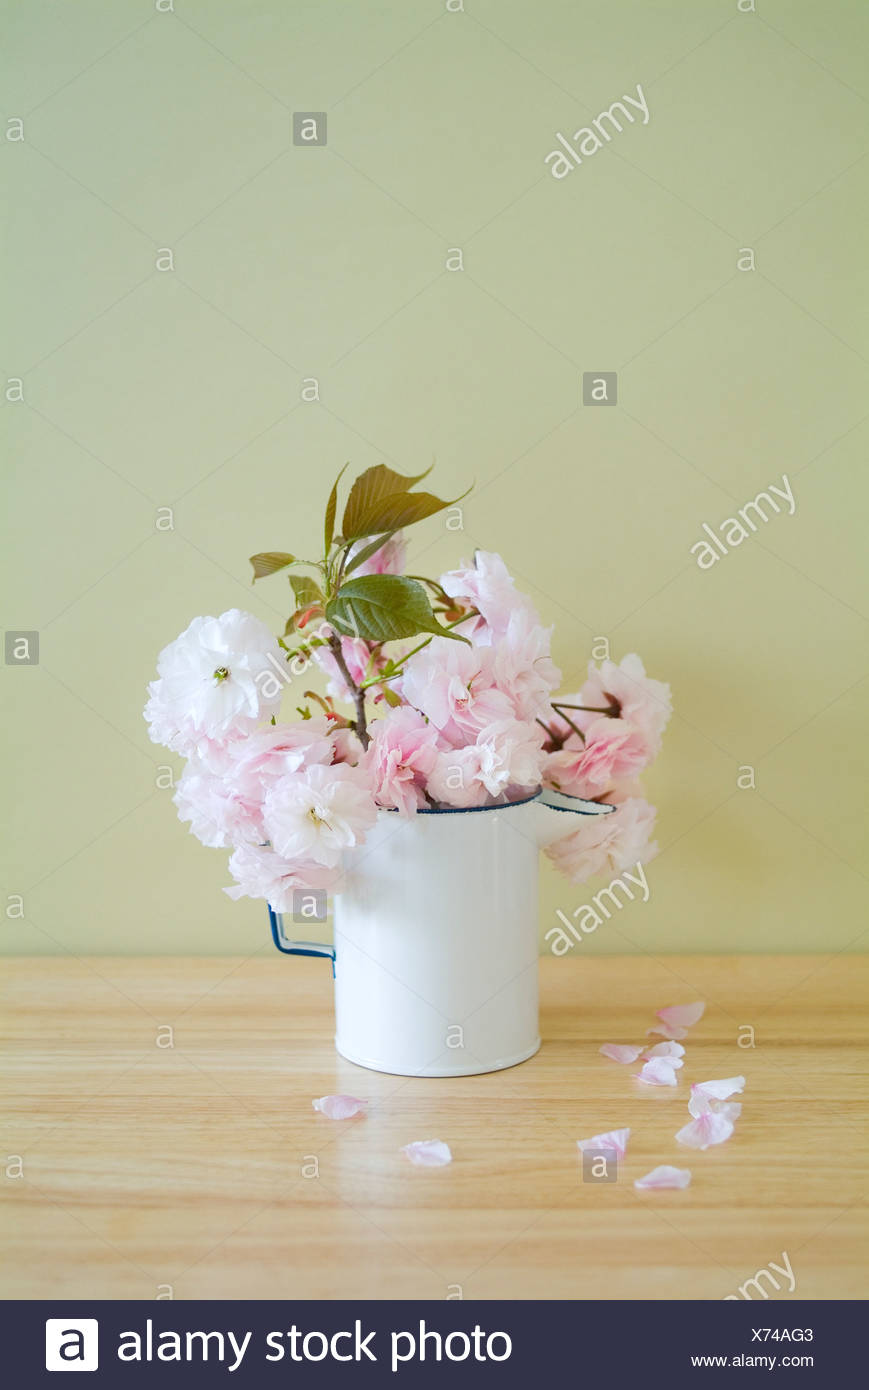 Cherry blossoms in jug - Stock Image